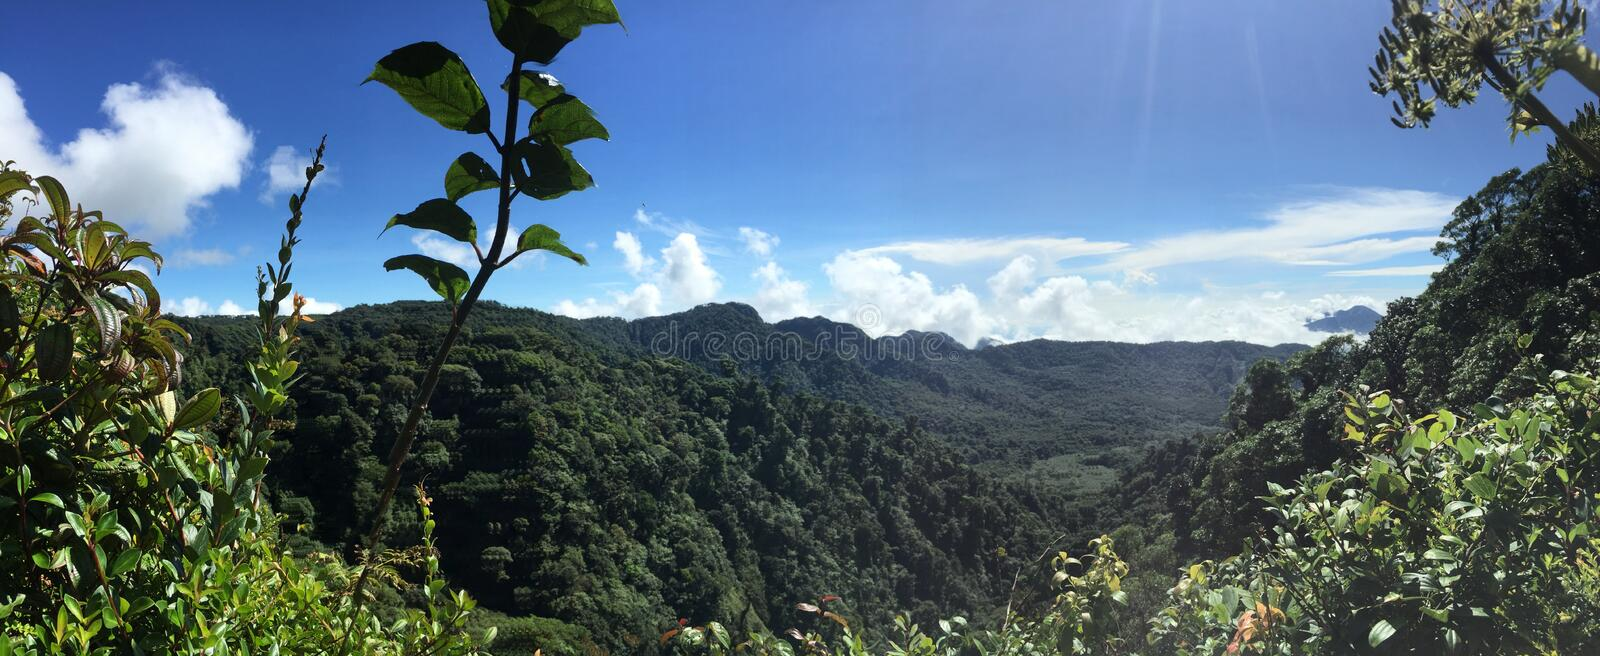 Lanscape of Costarrican Mountains. Breathtaking scene of a rainforest. stock image